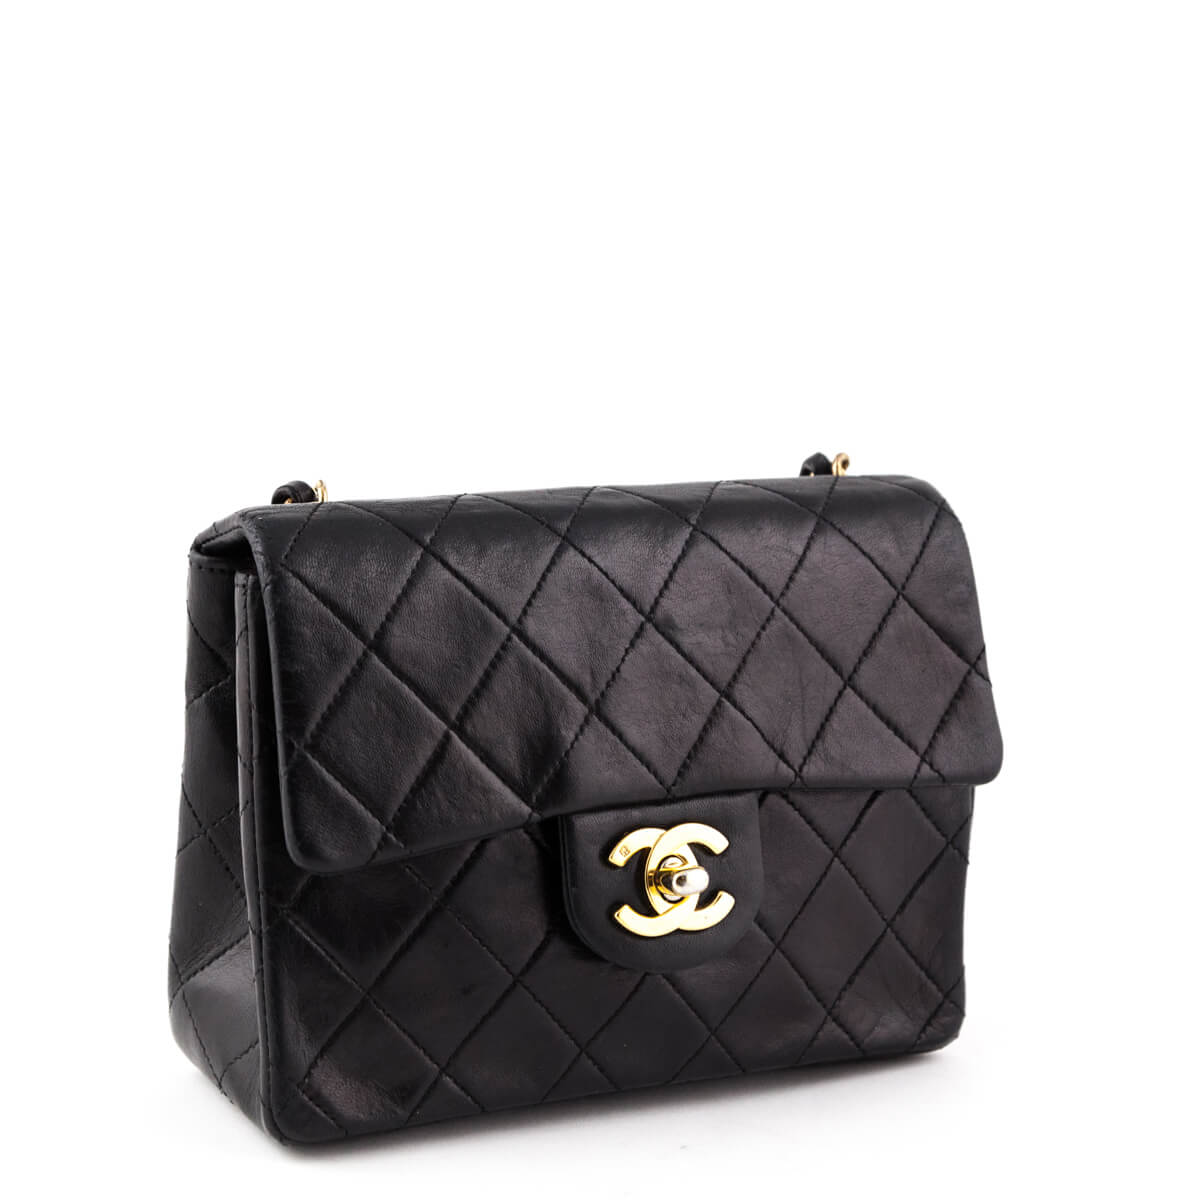 68f323751ec1 ... Chanel Black Lambskin Vintage Mini Square Flap bag - LOVE that BAG -  Preowned Authentic Designer ...